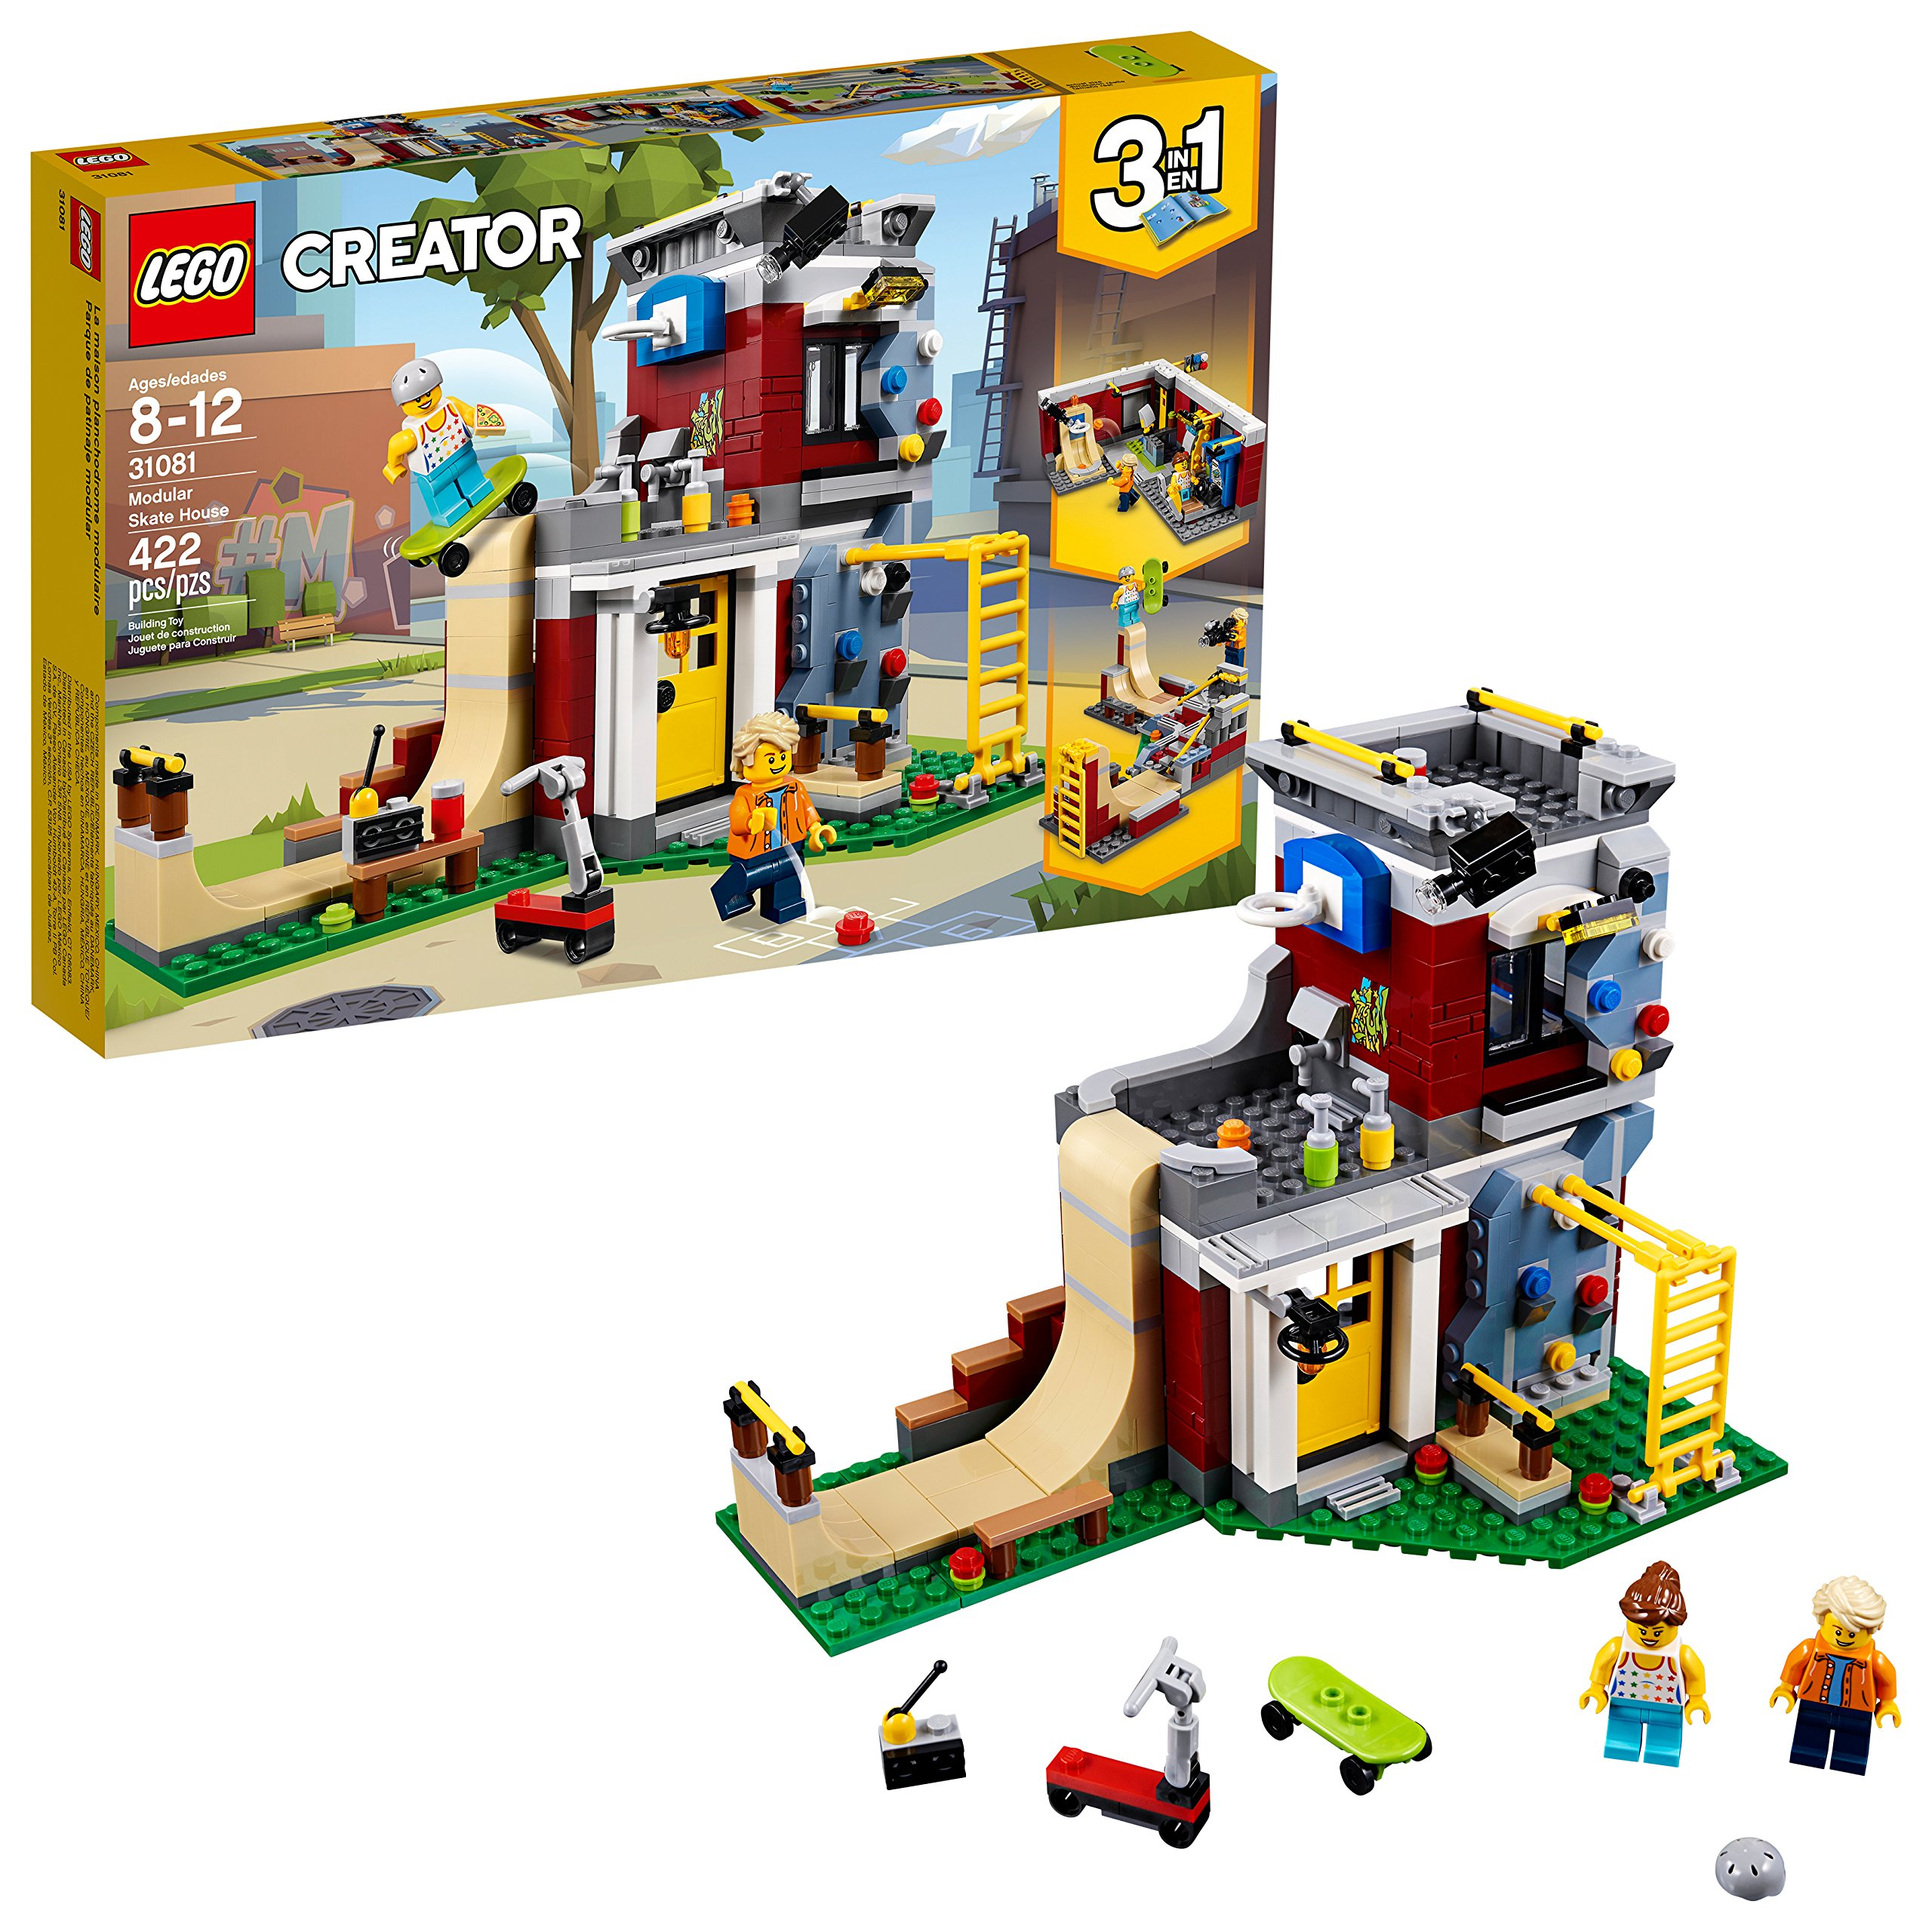 LEGO Creator 3in1 Modular Skate House 31081 Building Kit (422 Piece) by LEGO